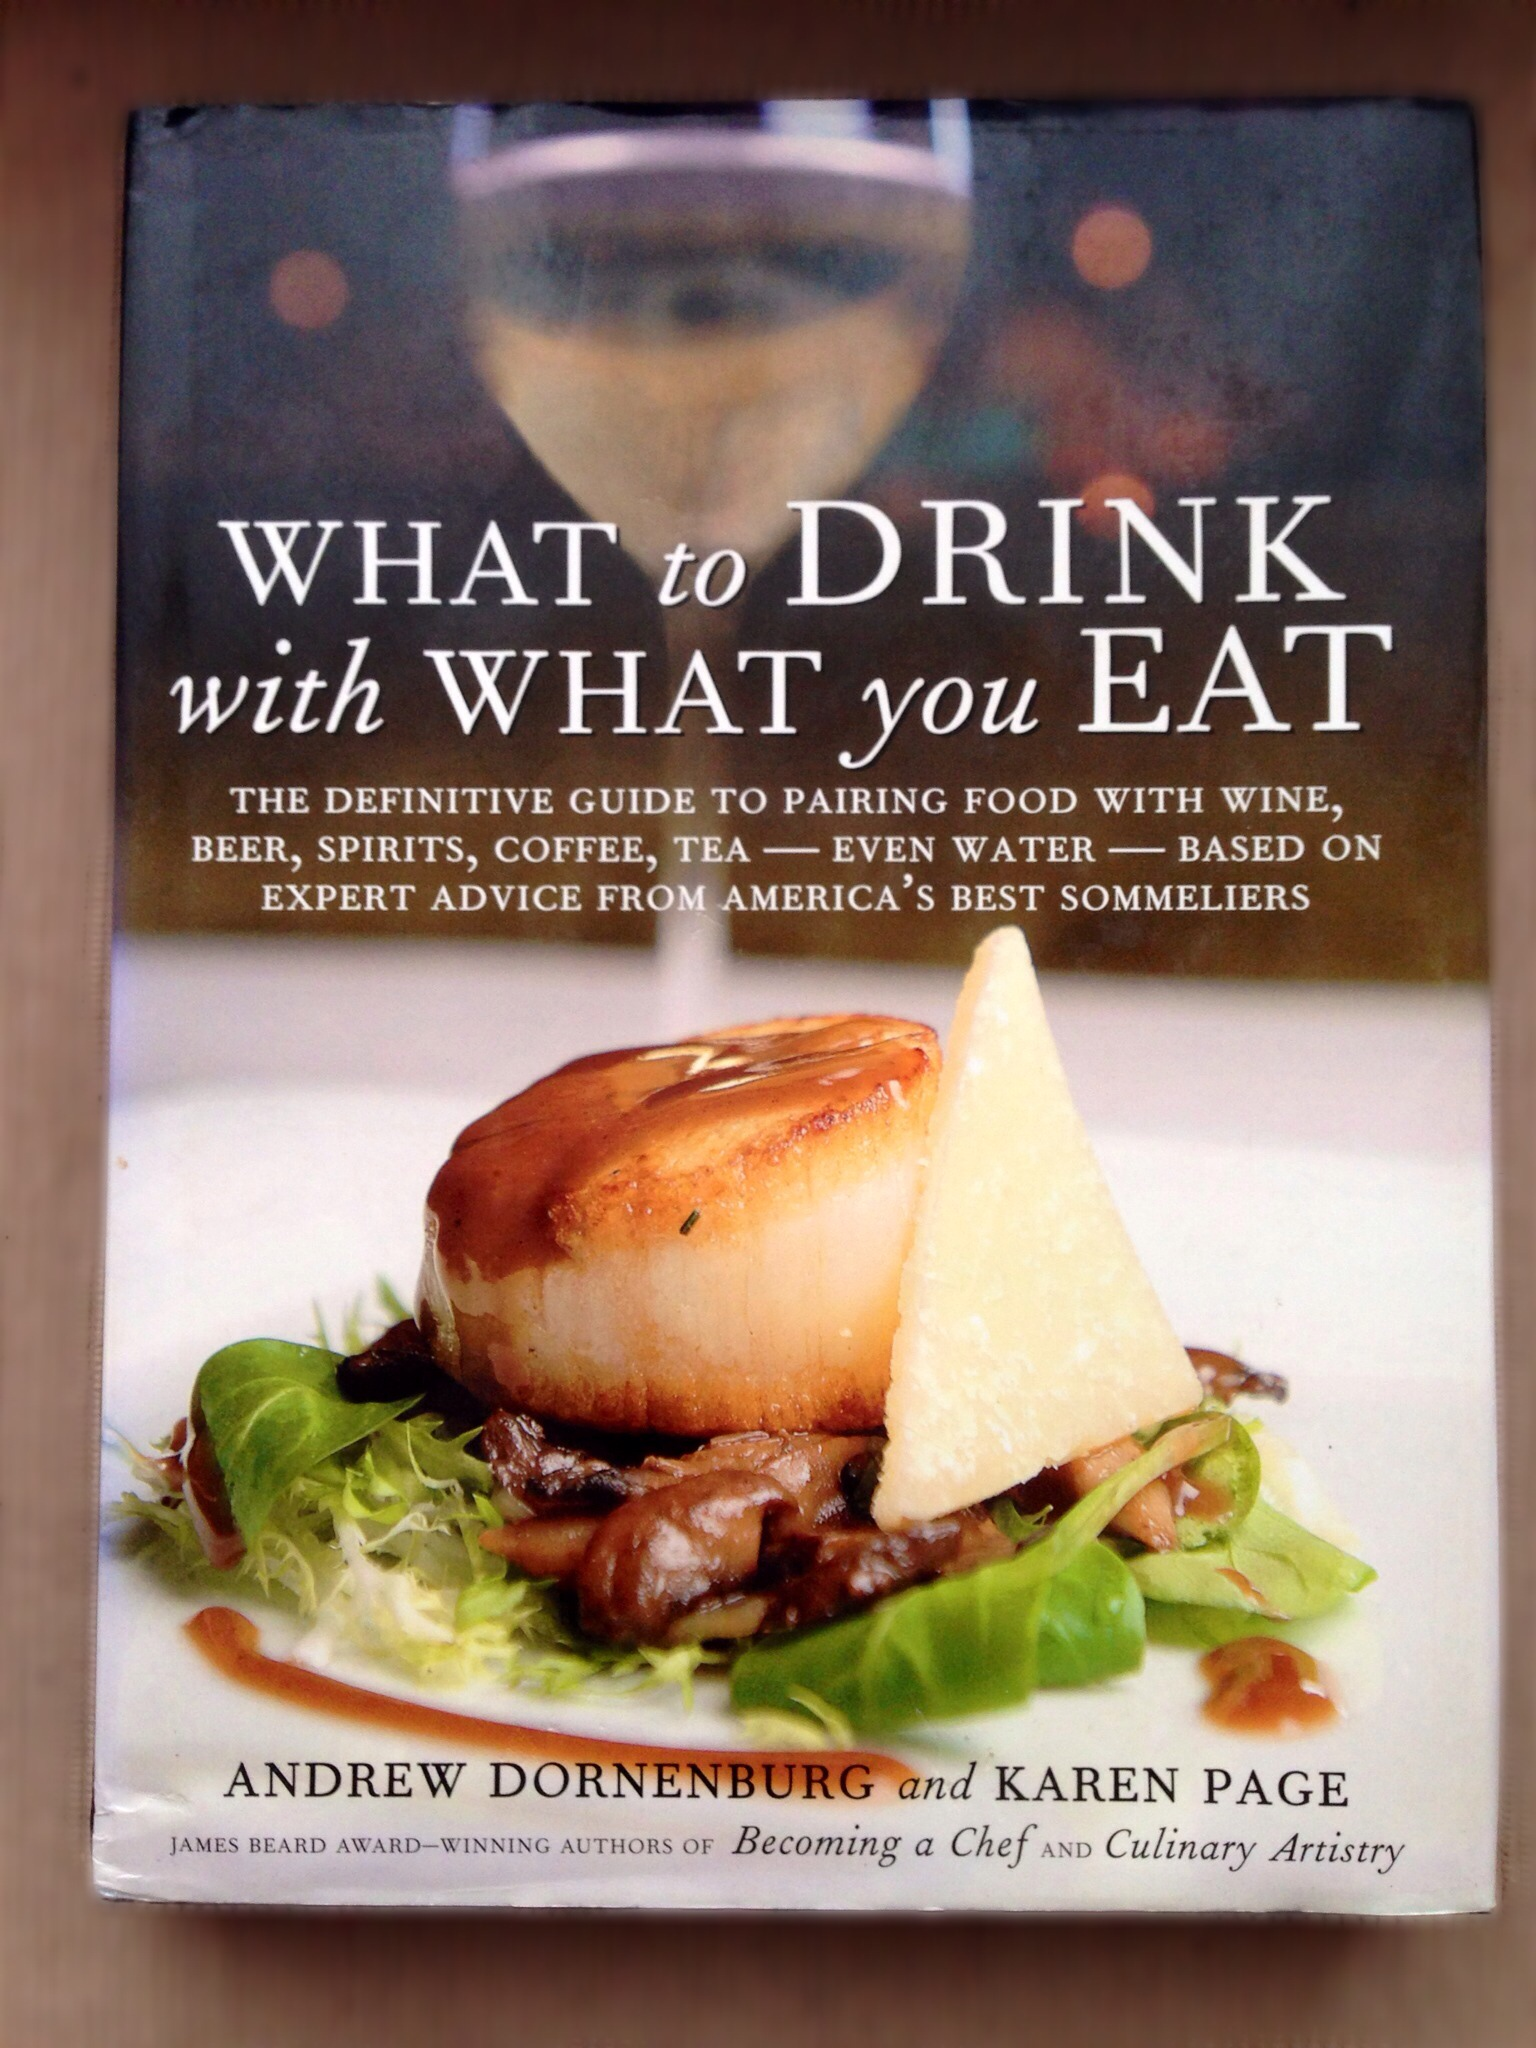 Reviews soup bowl recipes a comprehensive beverage pairing guide for the true food lover whether youre new to pairings or a sommelier in training this book is a must have for your forumfinder Images